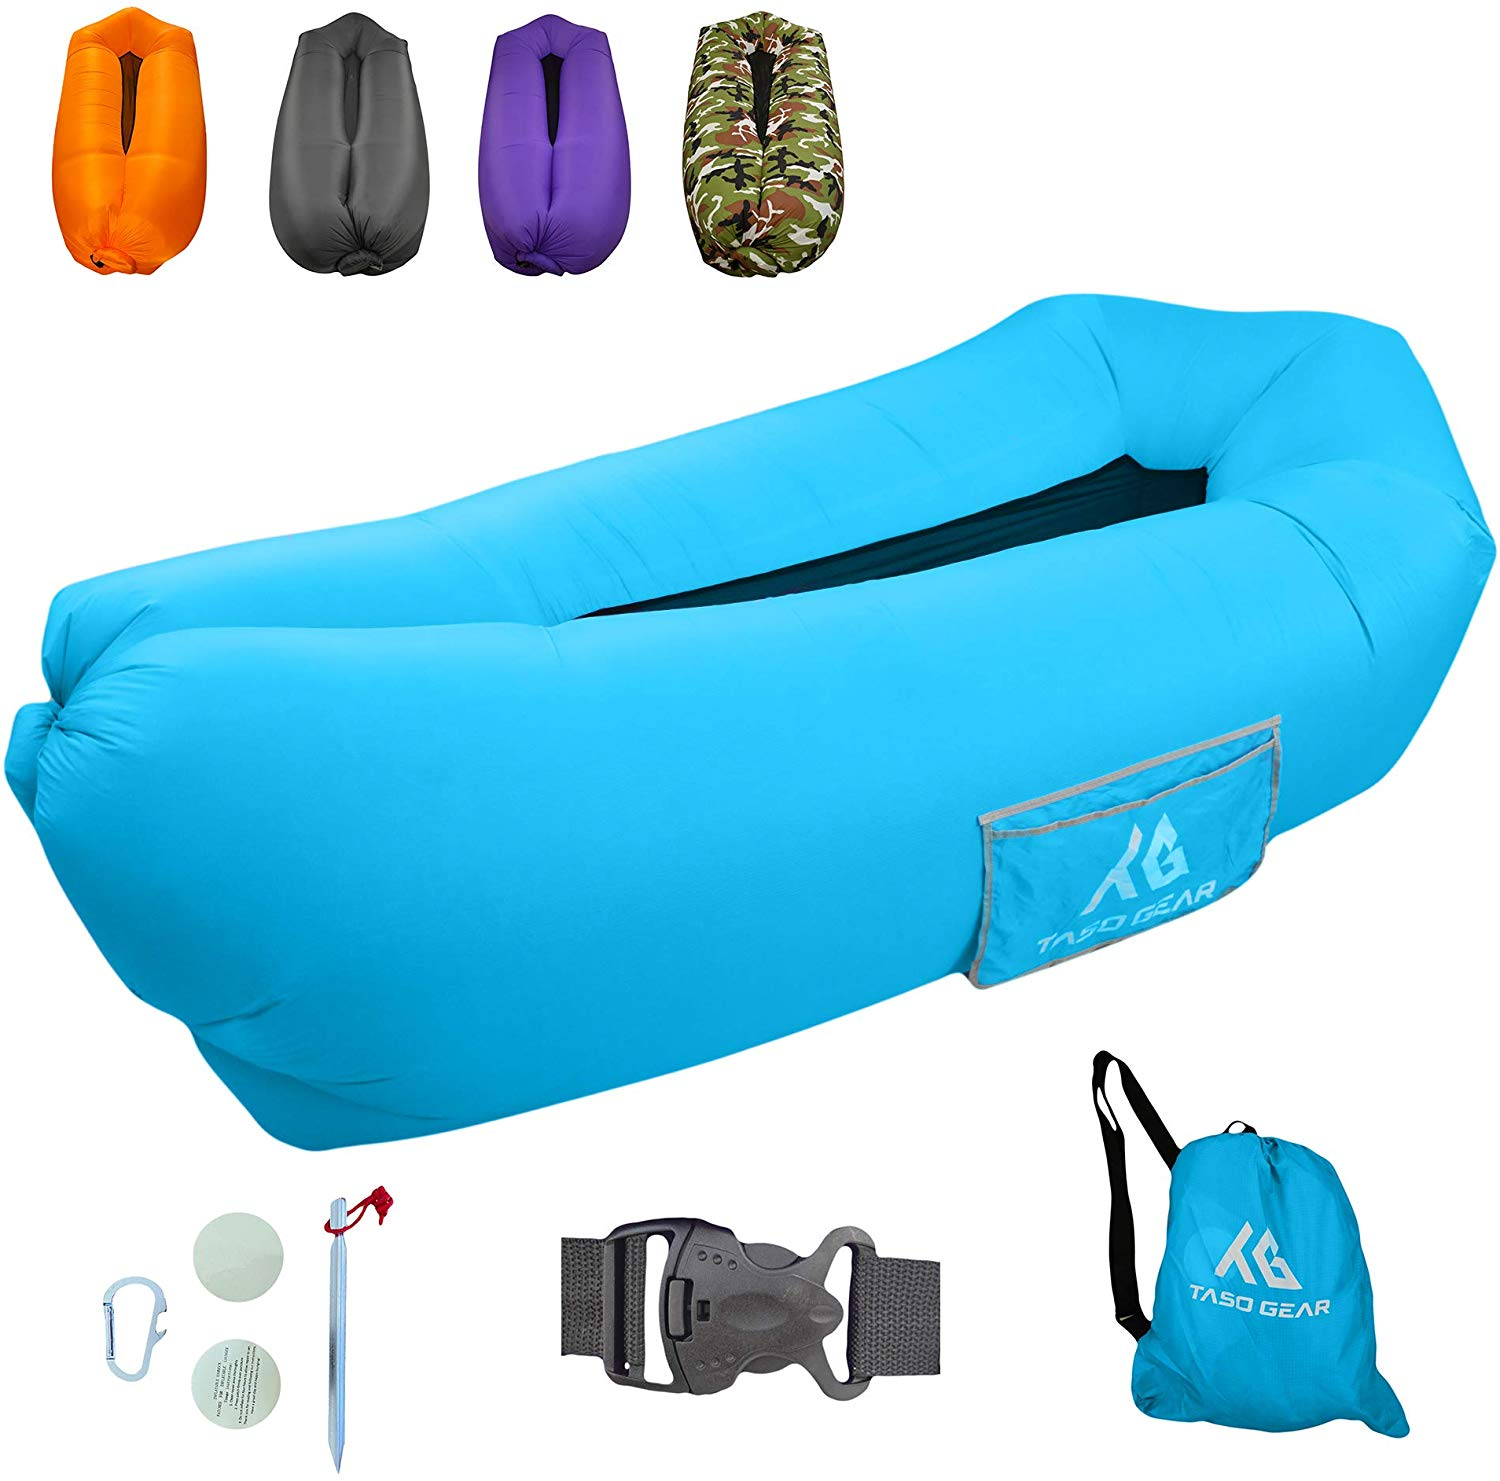 Taso Gear - Inflatable Lounger Air Sofa - Ideal for Camping Hiking Traveling Beach Picnic & Music Festivals - Waterproof Pouch Couch - Portable Hammock - Upgraded Anti-Air Leaking Design Air Lounger